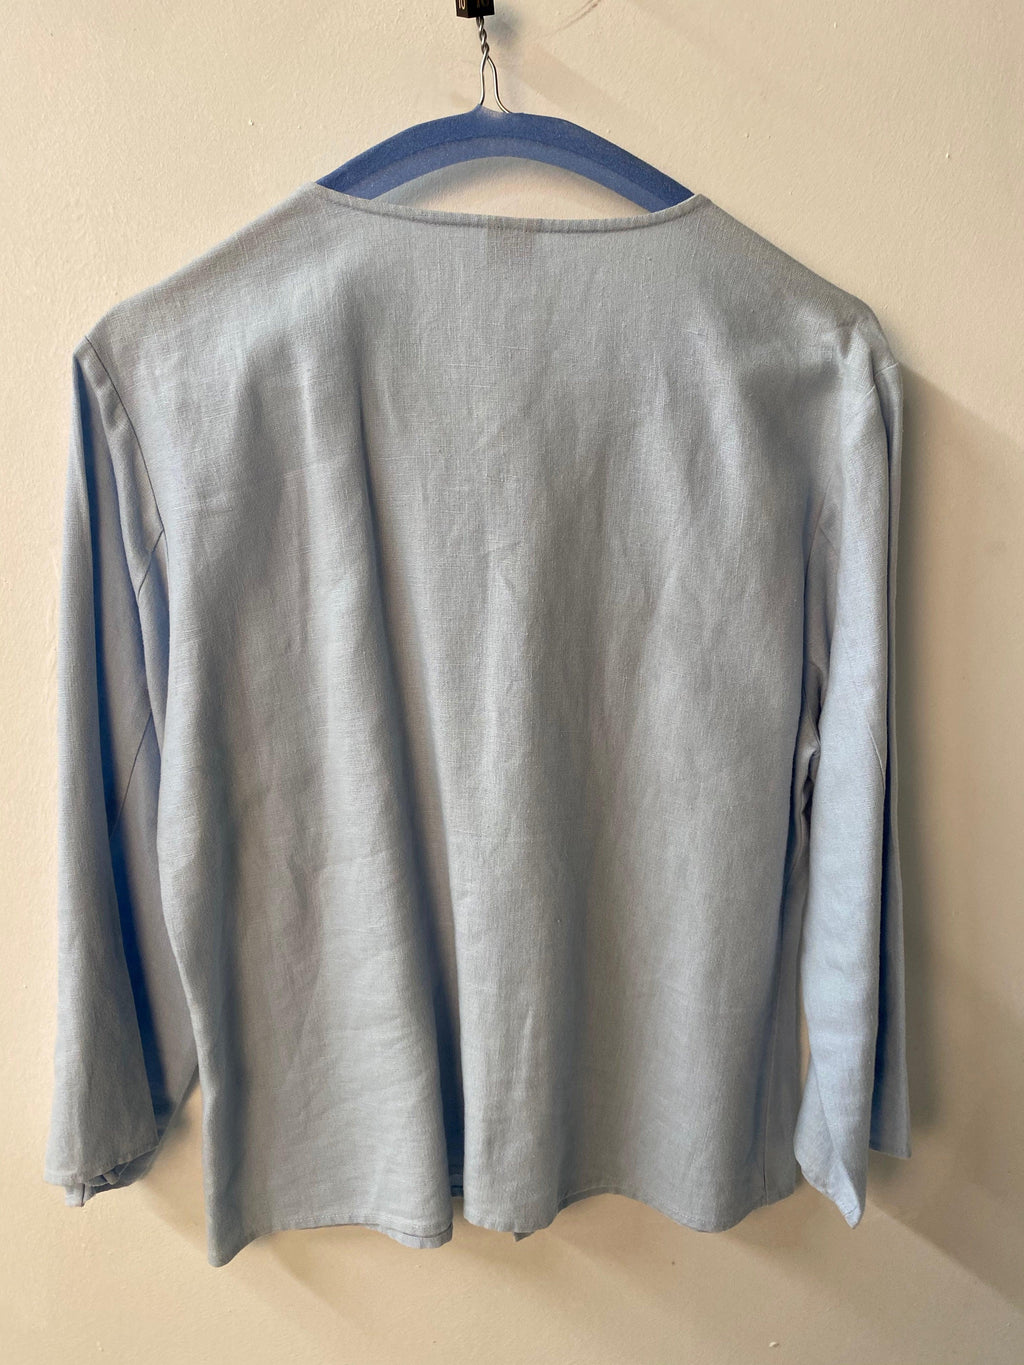 Olsen 3/4 Sleeved Shirt Pale Blue Linen UK Size 10